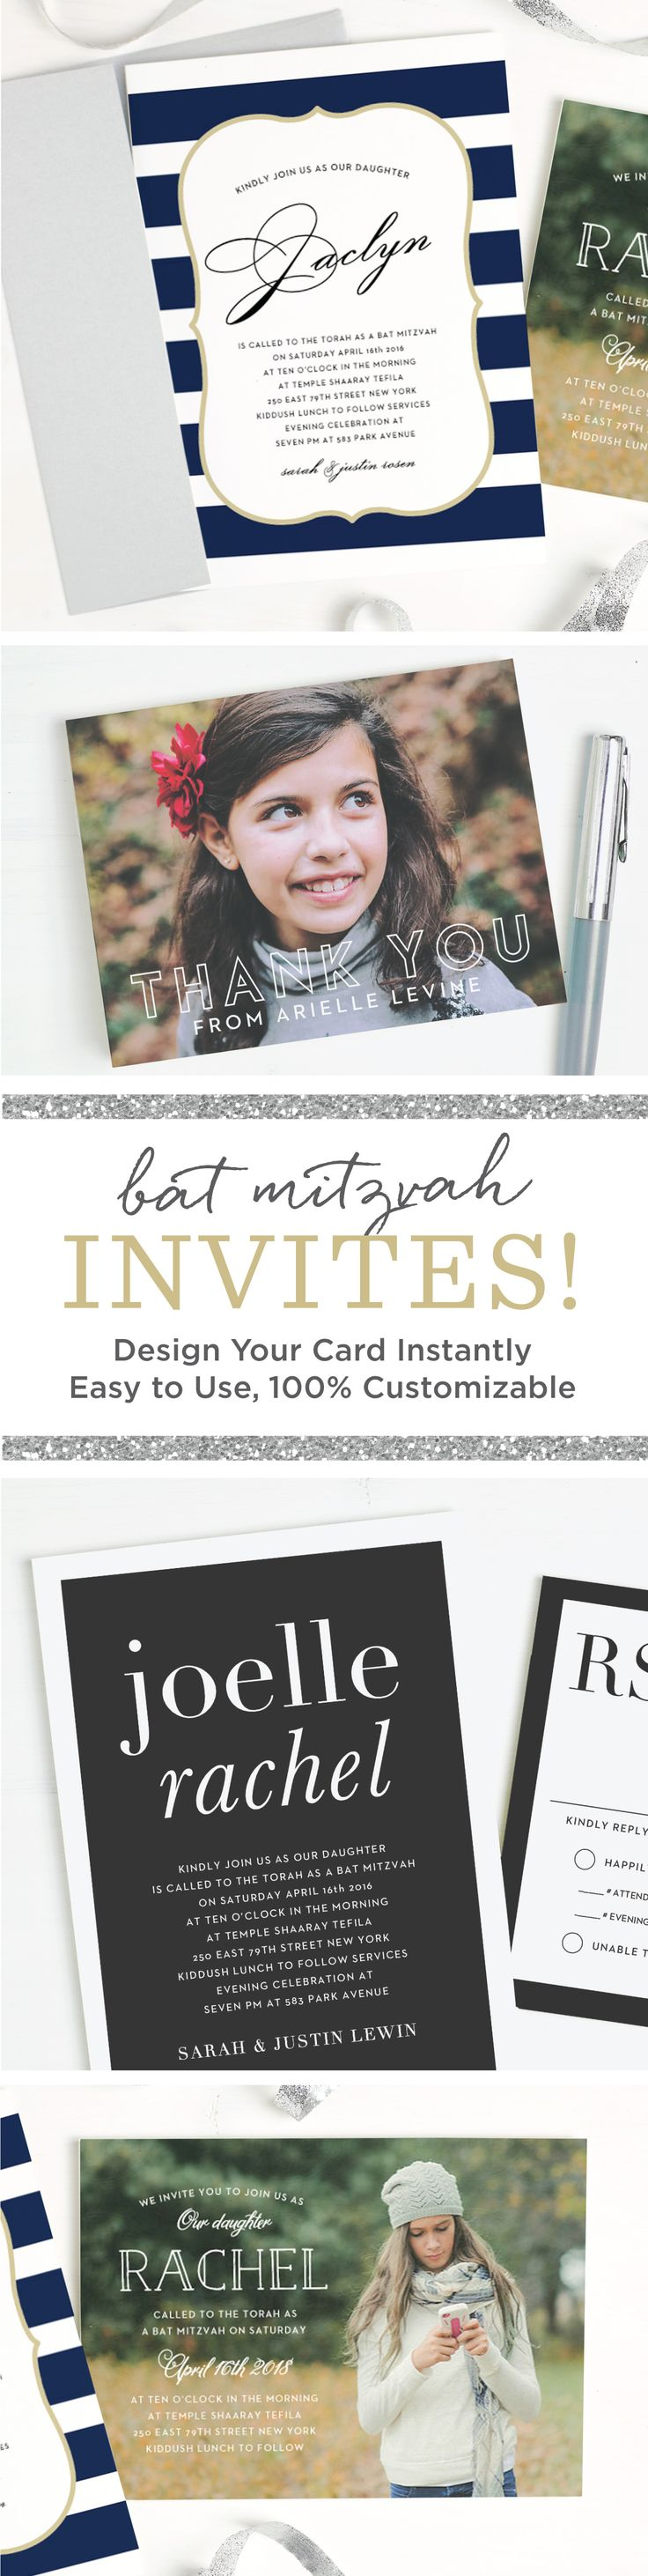 Best 25+ Invitations online ideas on Pinterest | Party invitations ...